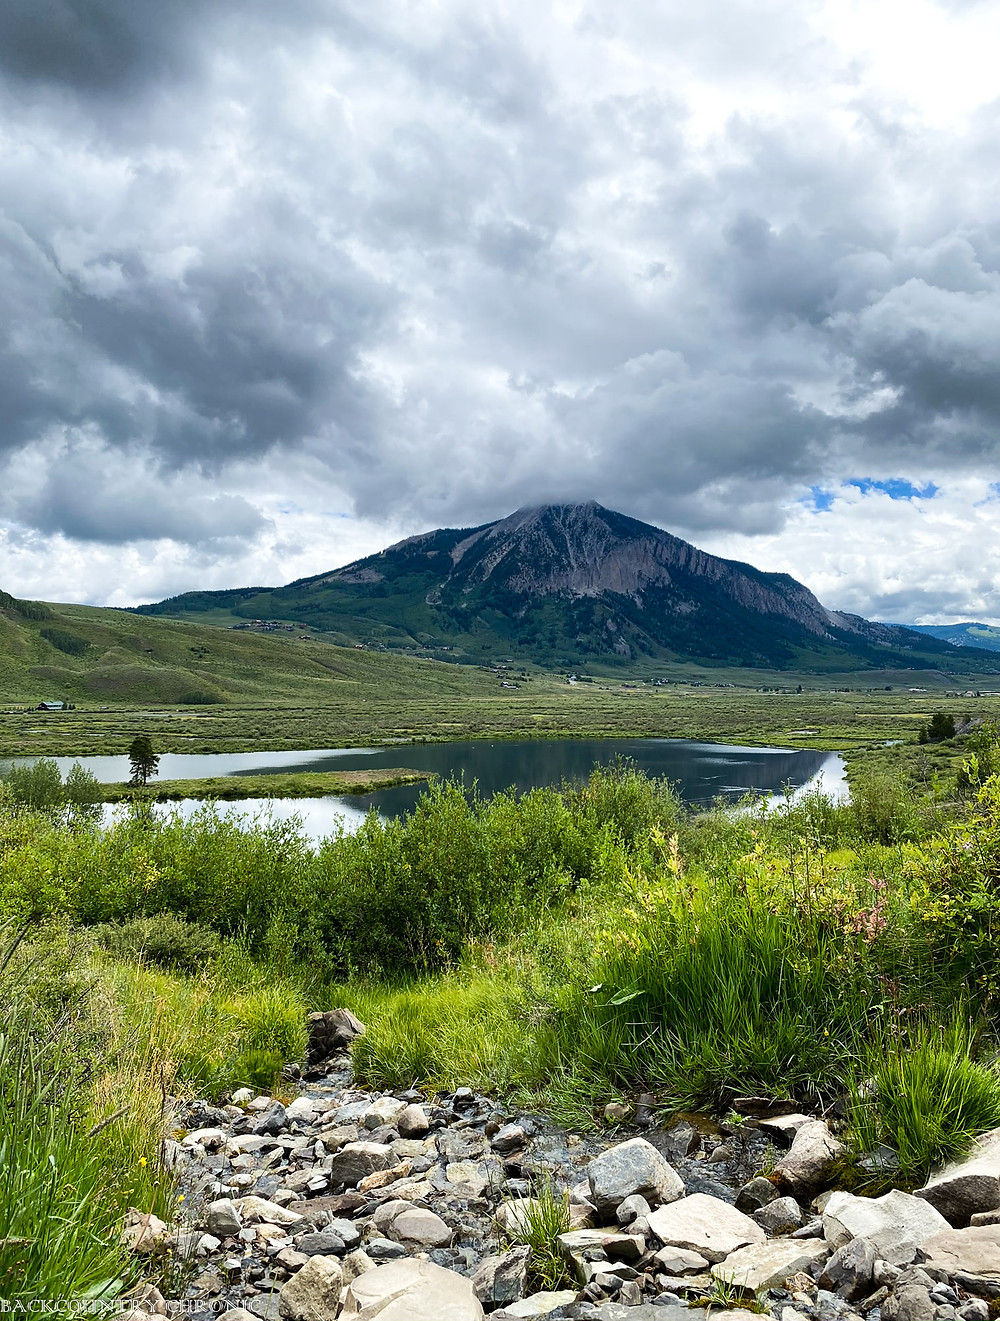 Storm clouds over Mount Crested Butte